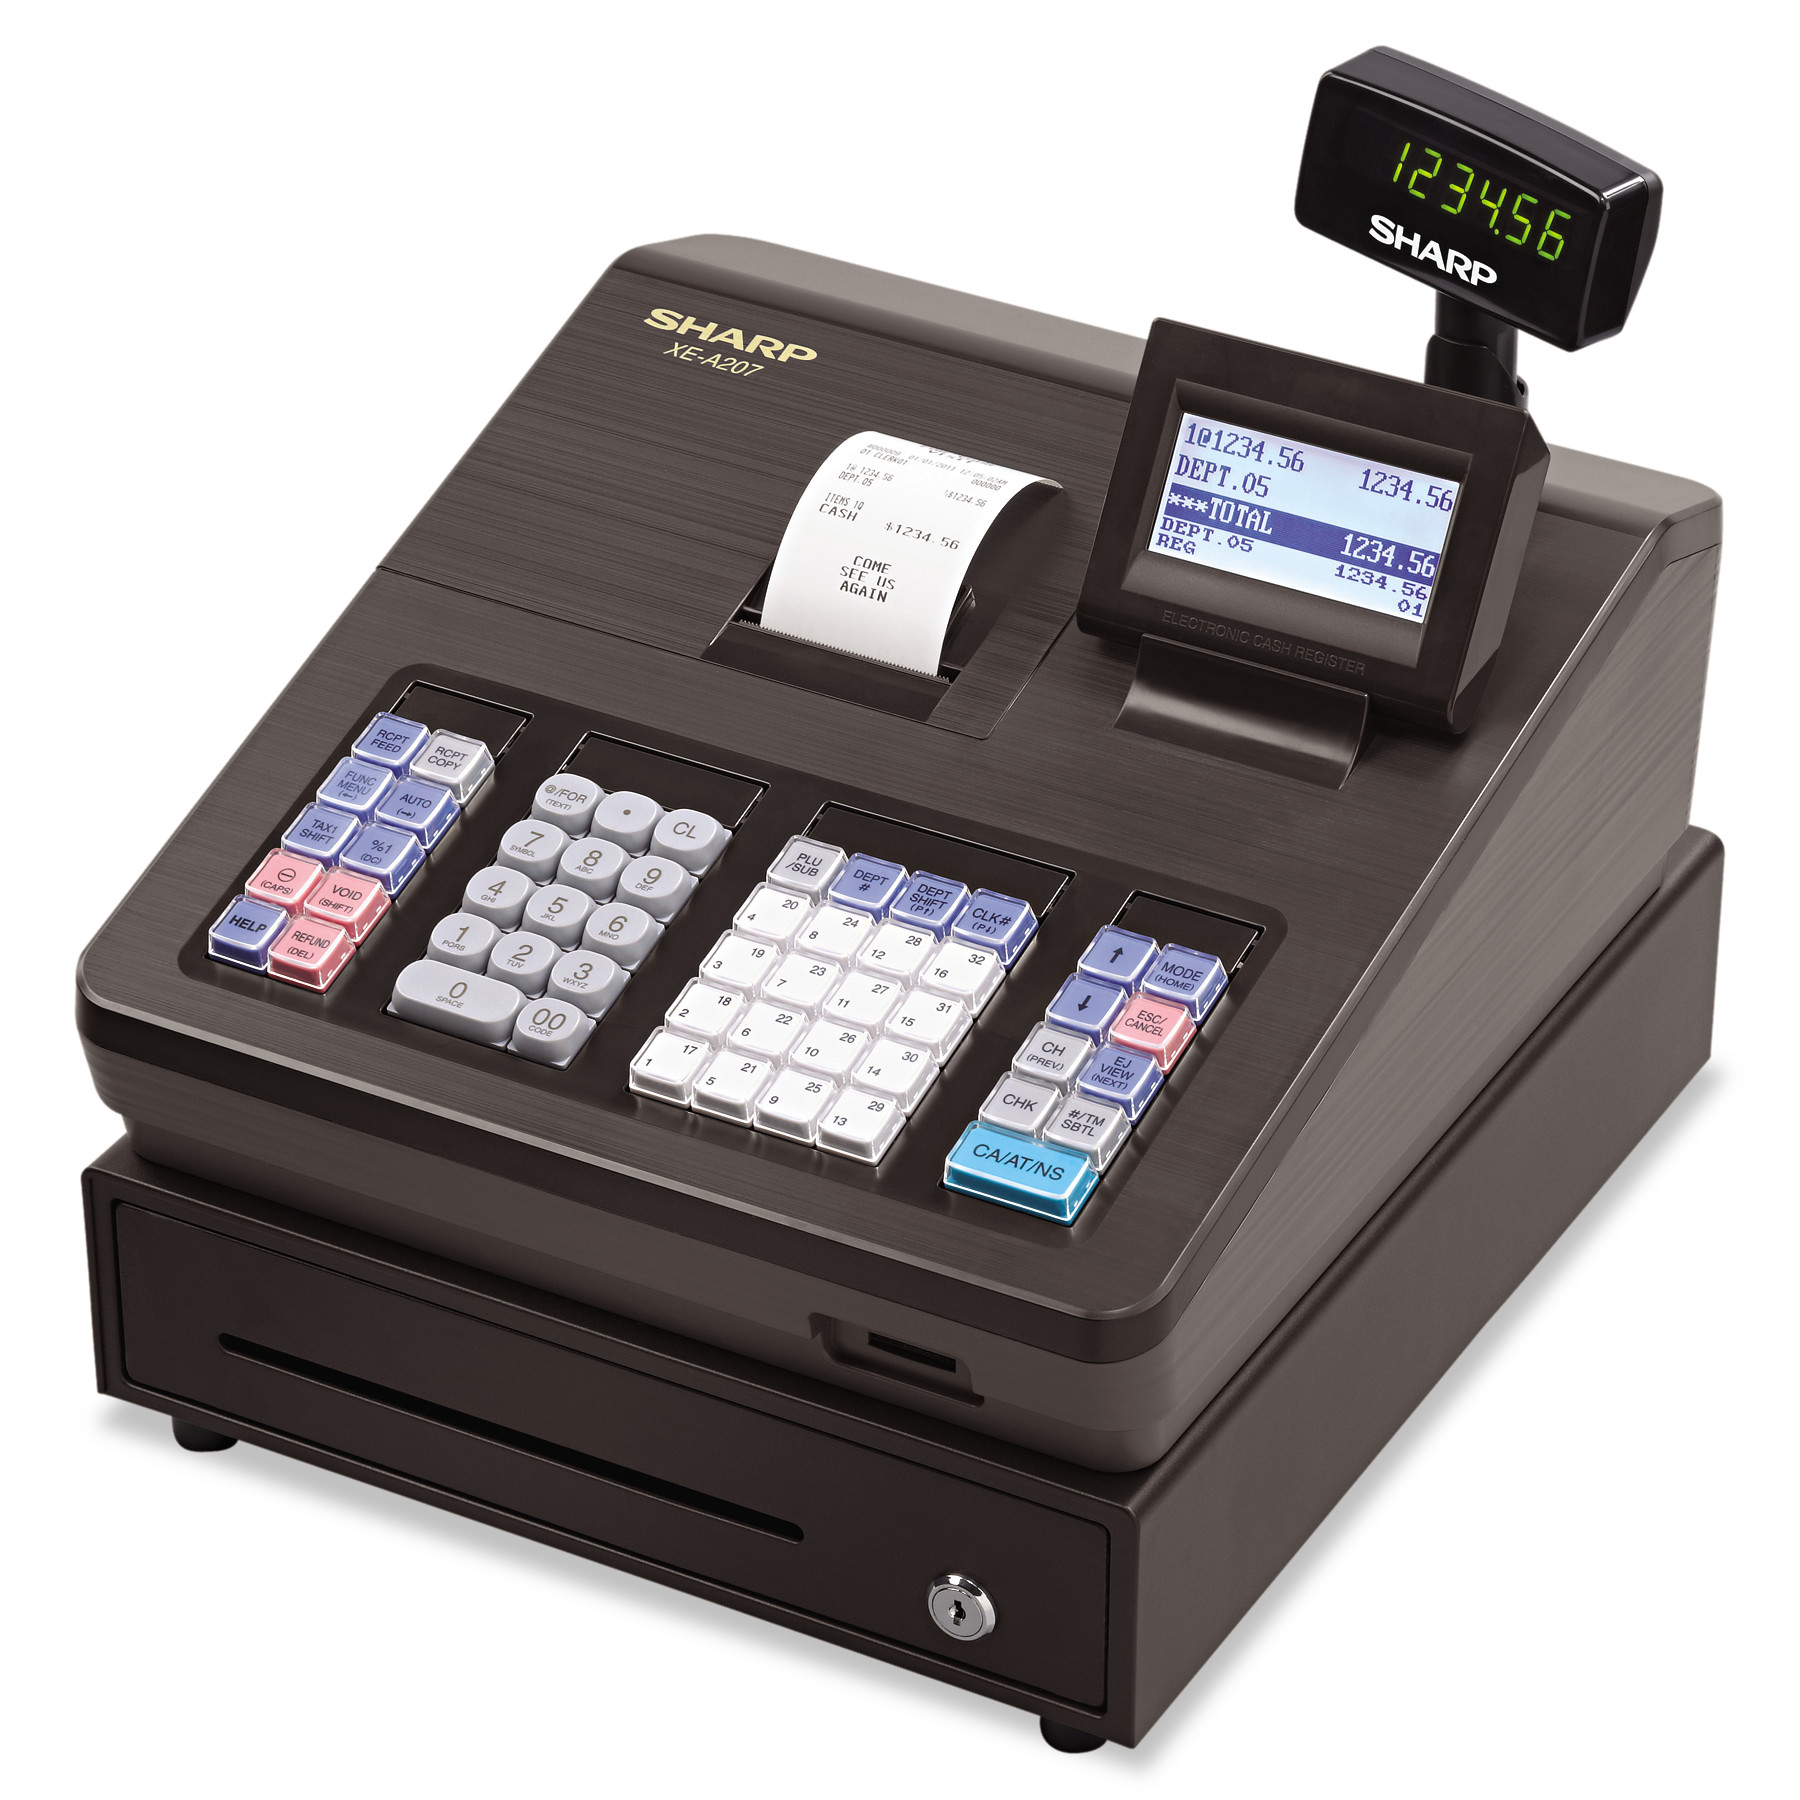 Sharp XE Series Electronic Cash Register, Thermal Printer, 2500 Lookup, 25 Clerks, LCD